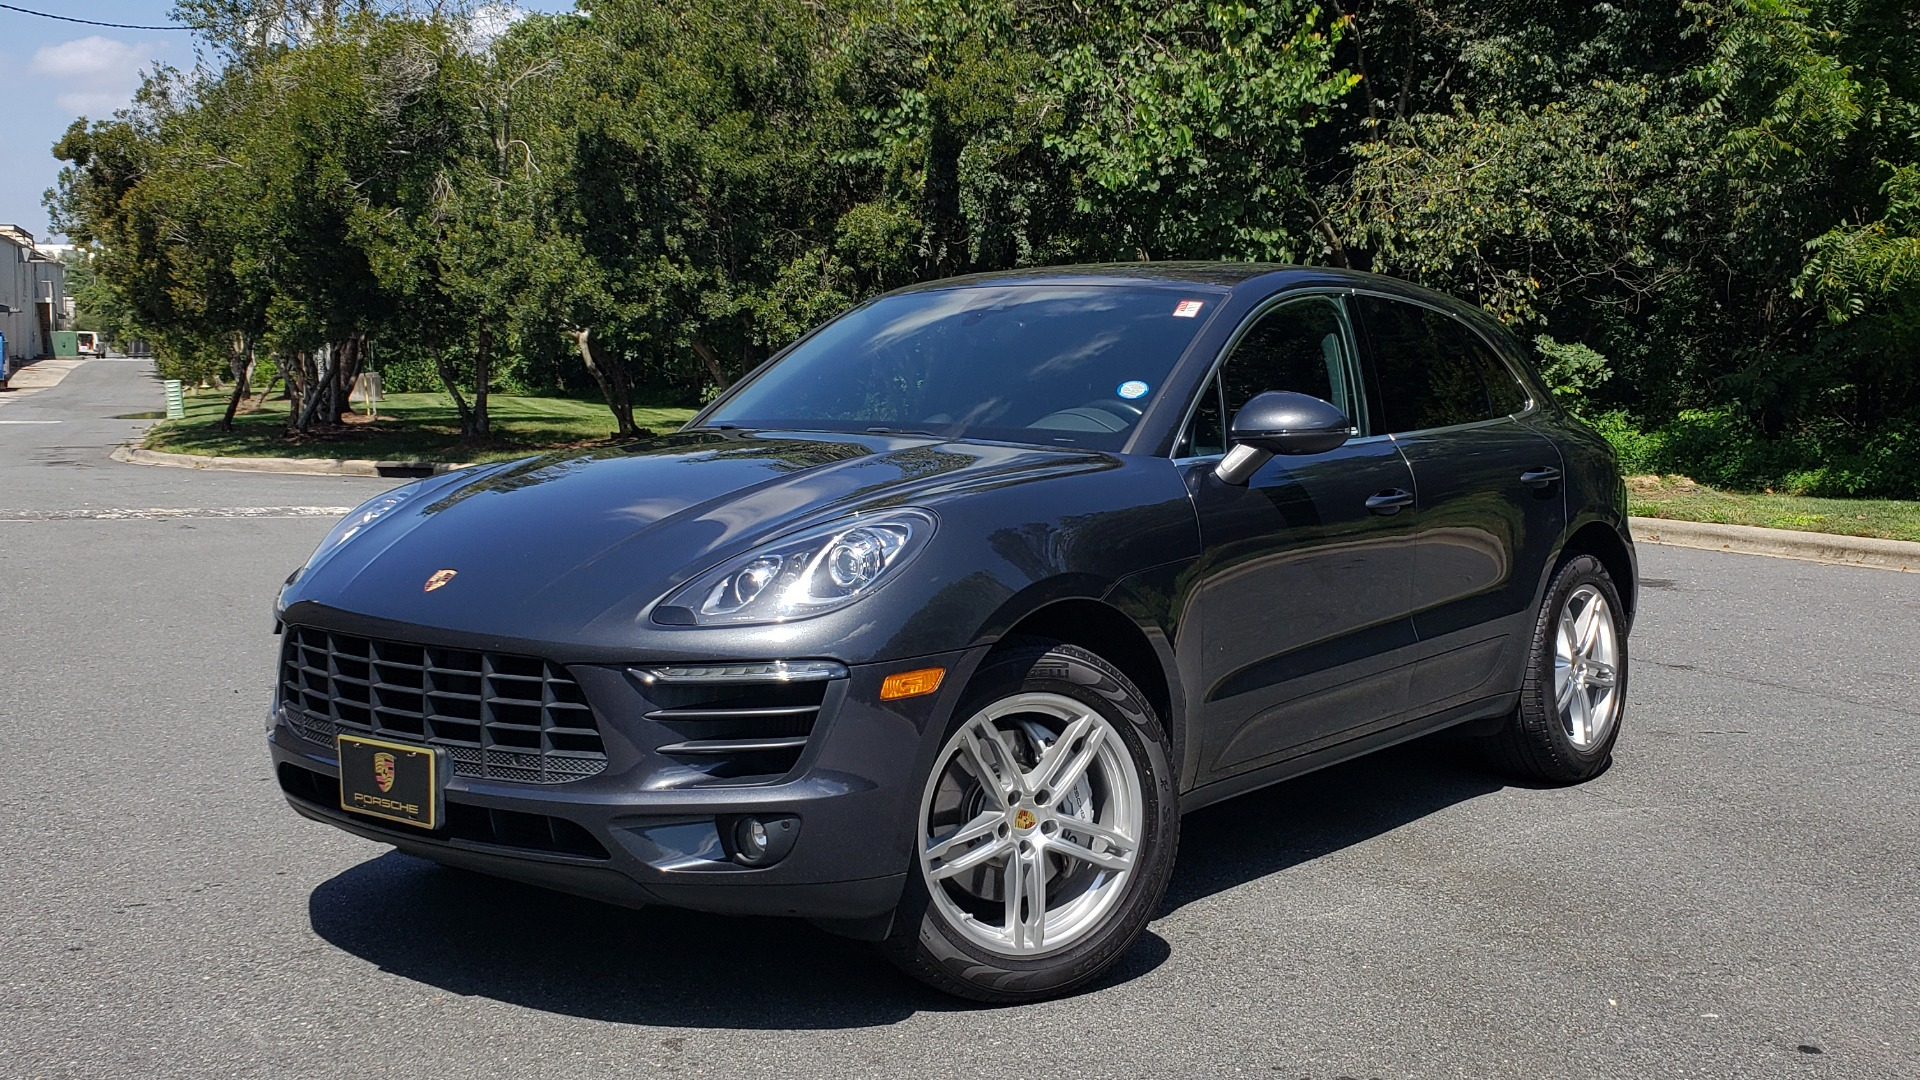 Used 2017 Porsche MACAN S PREMIUM PKG / NAV / BOSE / SUNROOF / REARVIEW for sale Sold at Formula Imports in Charlotte NC 28227 4